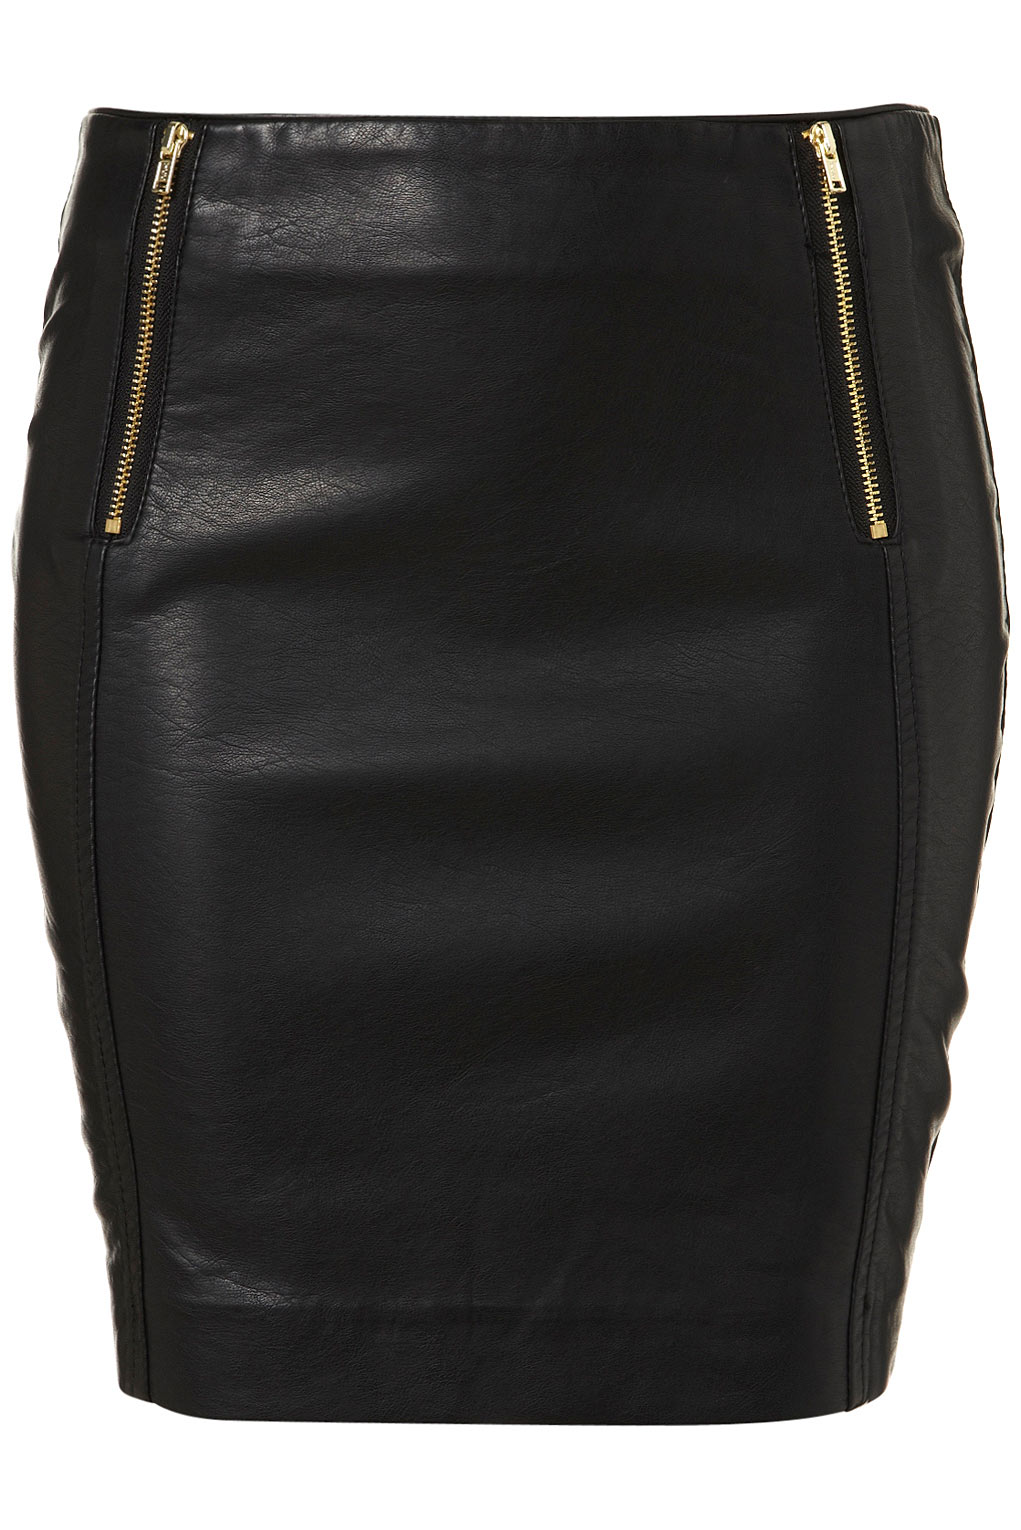 leather mini skirt topshop 2014 2015 fashion trends 2016